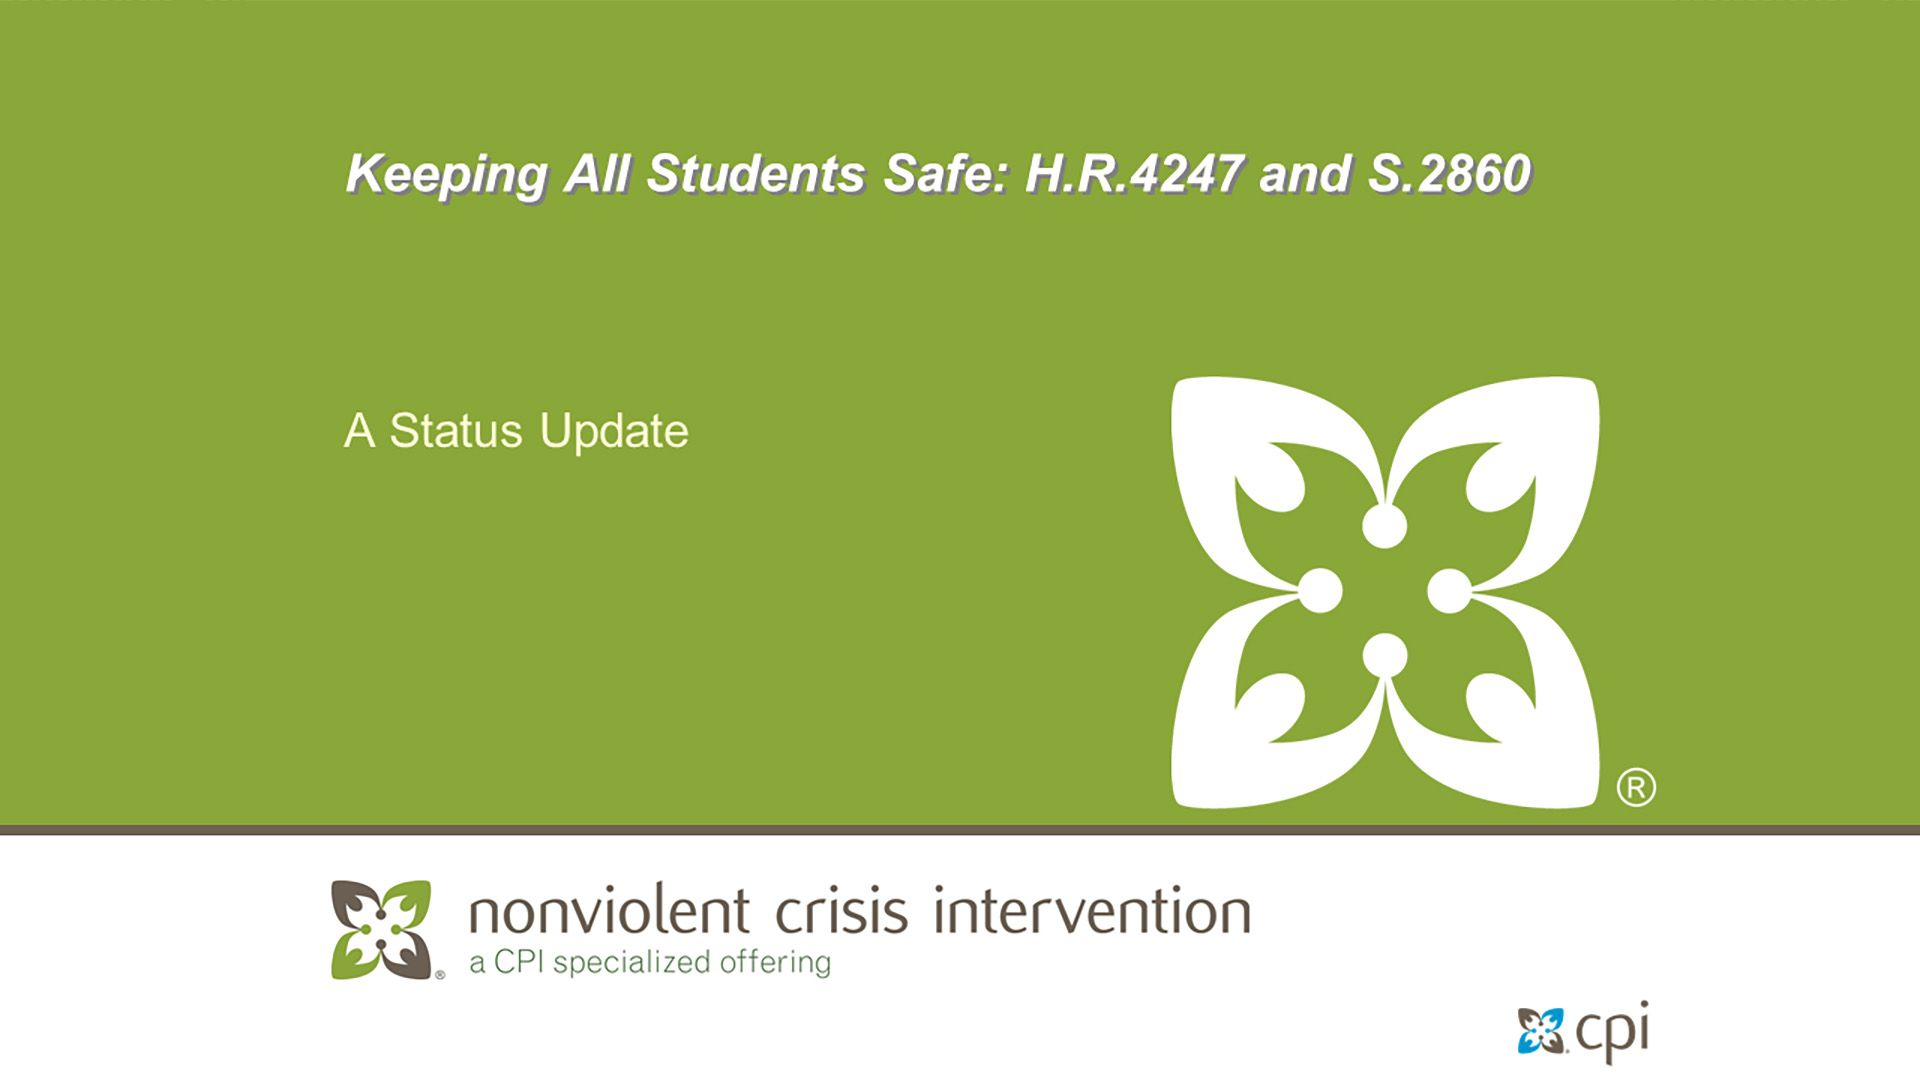 Keeping All Students Safe: H.R.4247 and S.2860